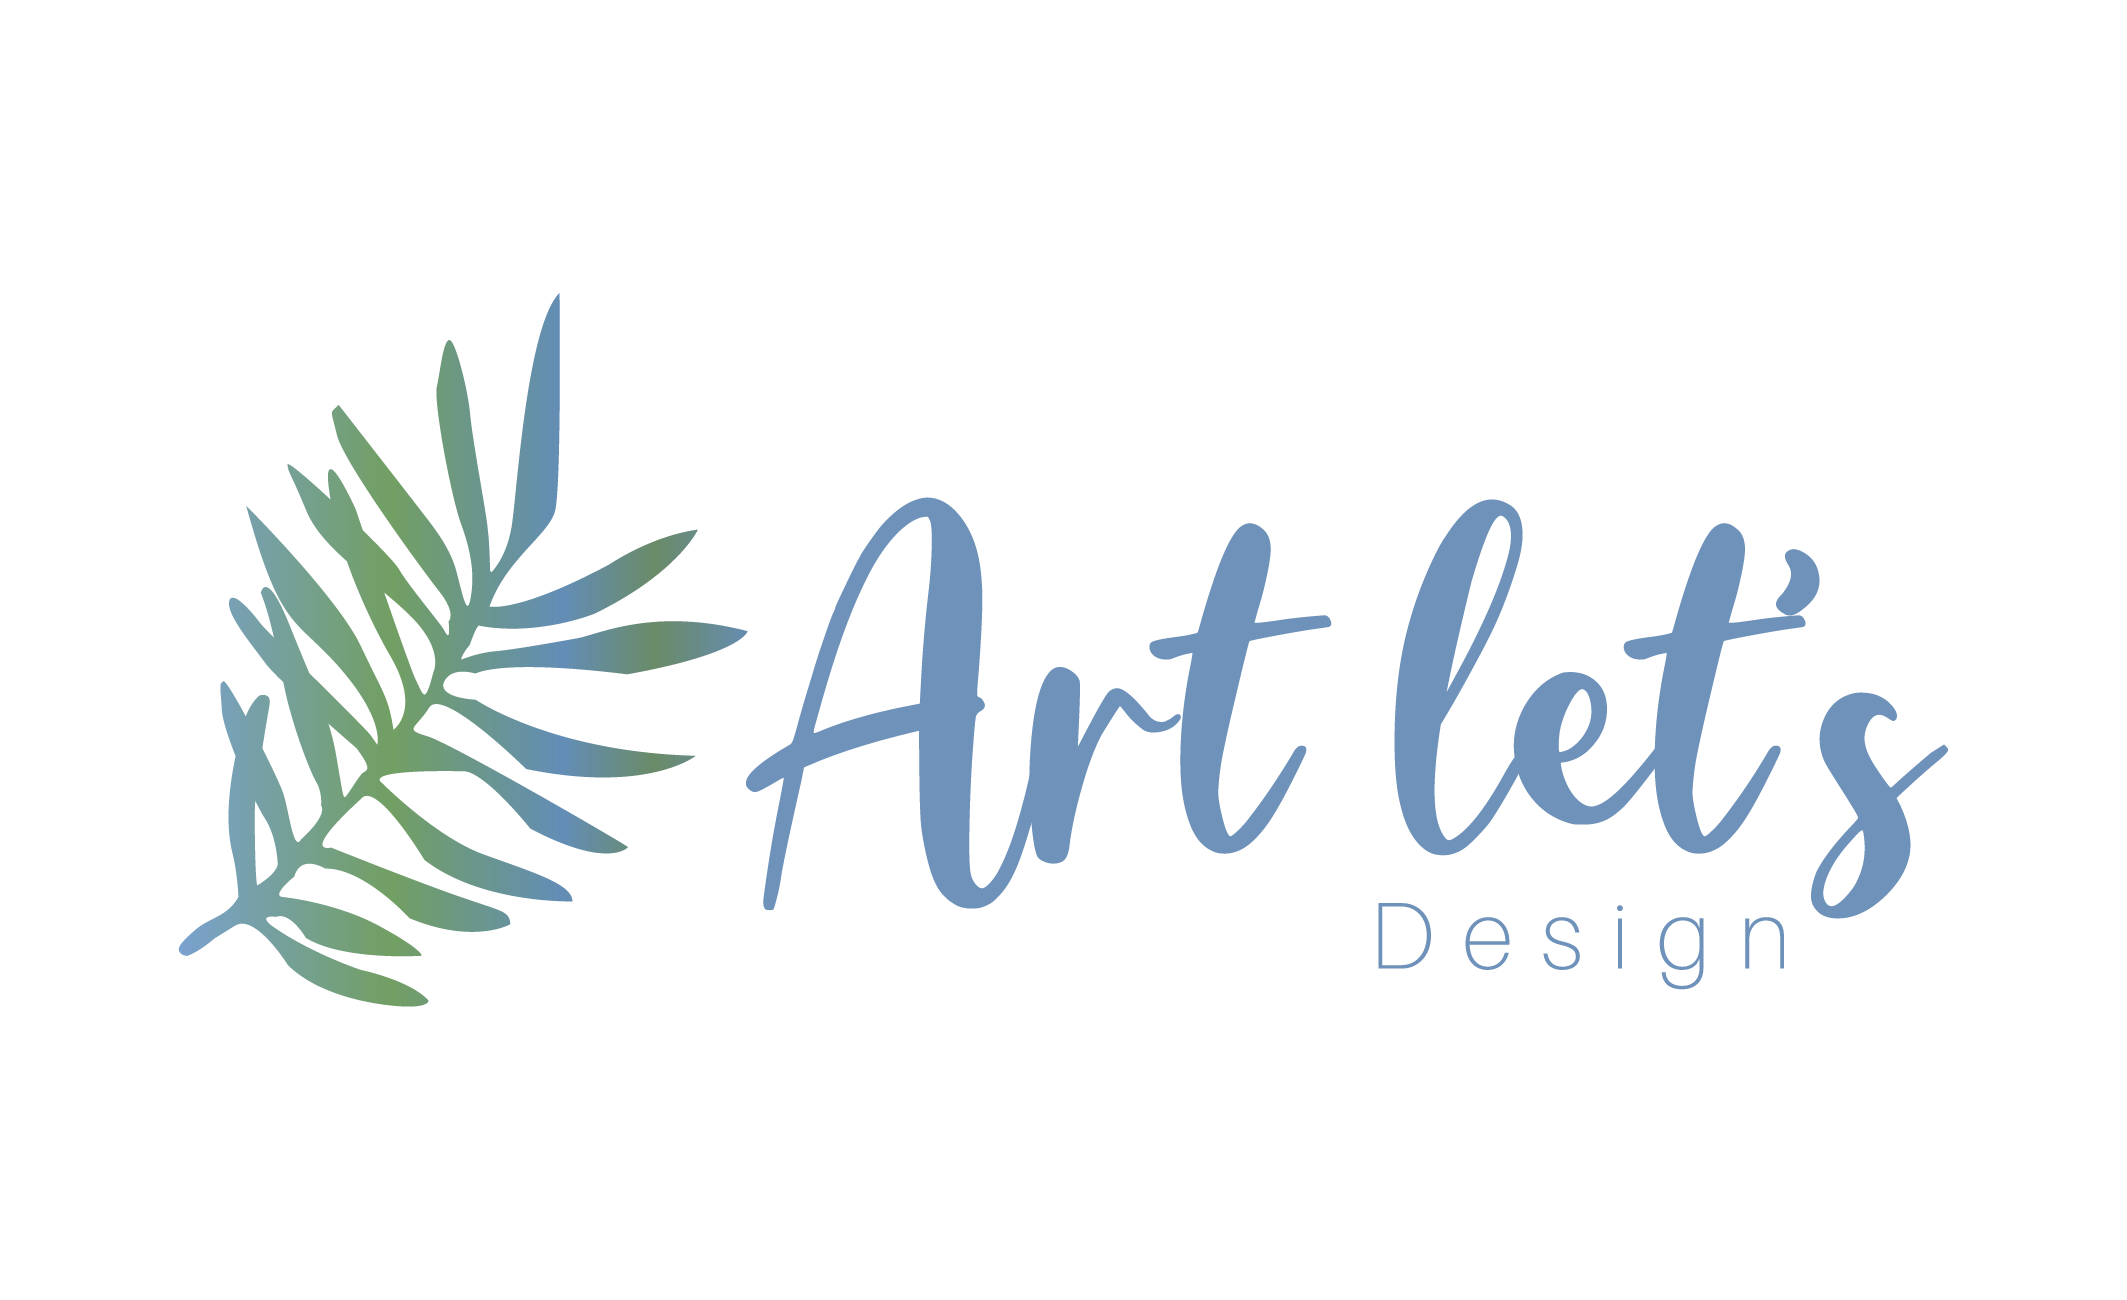 Logo Art let's design